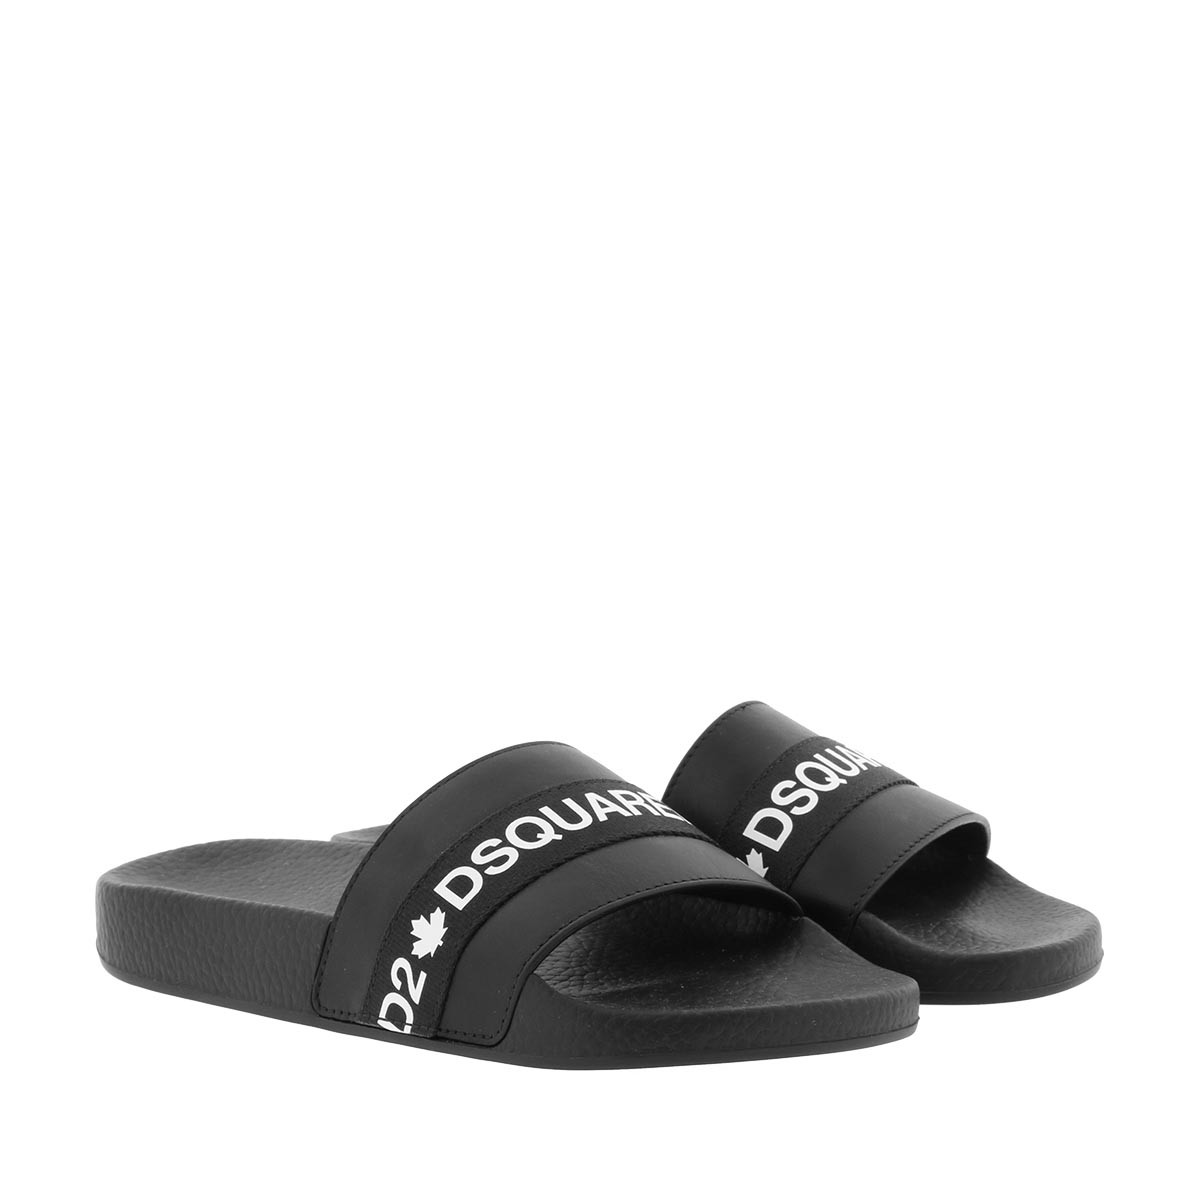 Dsquared2 Schuhe - DSquared Slides Black/White - in schwarz - für Damen